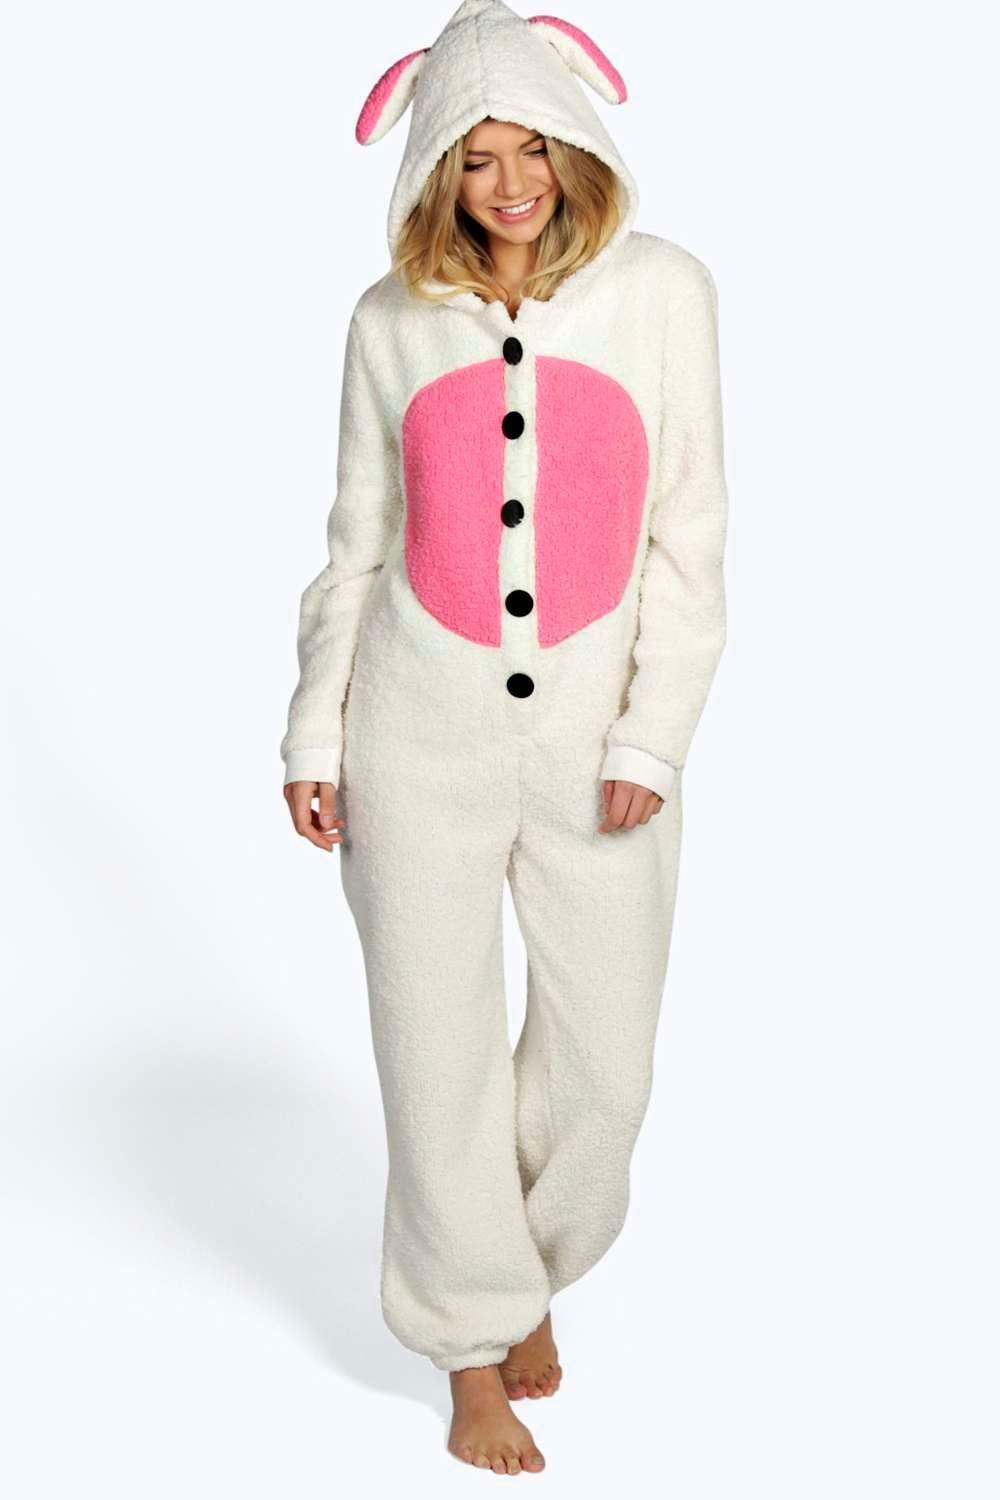 Boohoo Nelly Fluffy Bunny Onesie in Pink